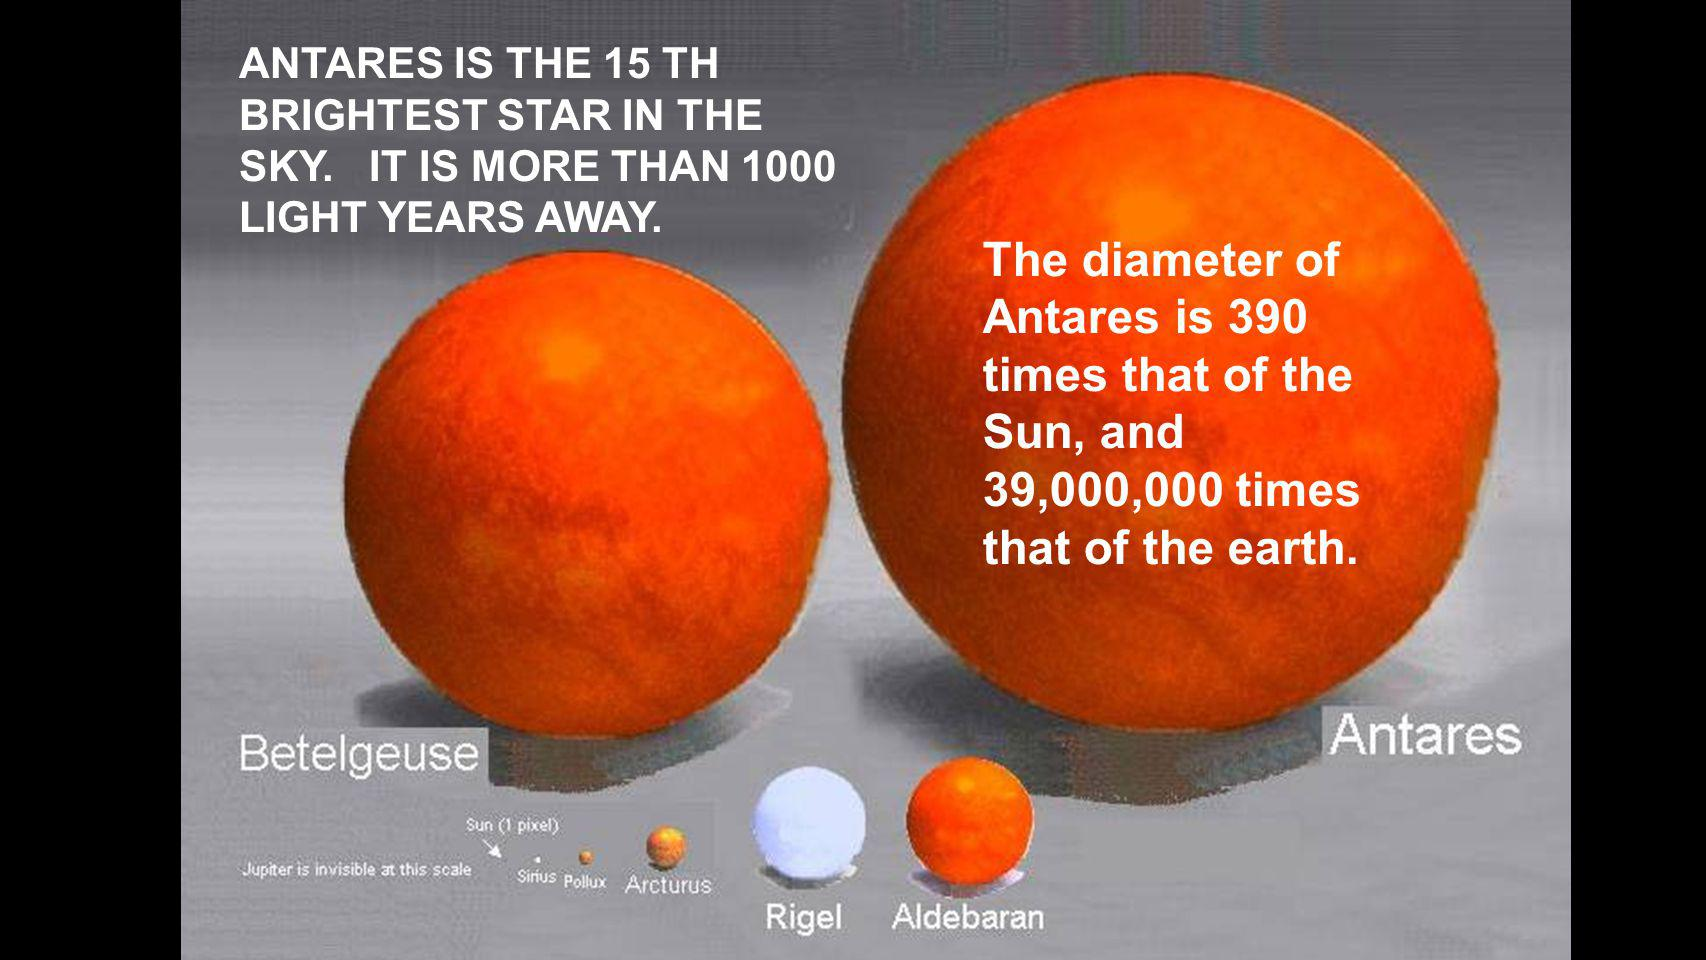 ANTARES IS THE 15 TH BRIGHTEST STAR IN THE SKY. IT IS MORE THAN 1000 LIGHT YEARS AWAY.